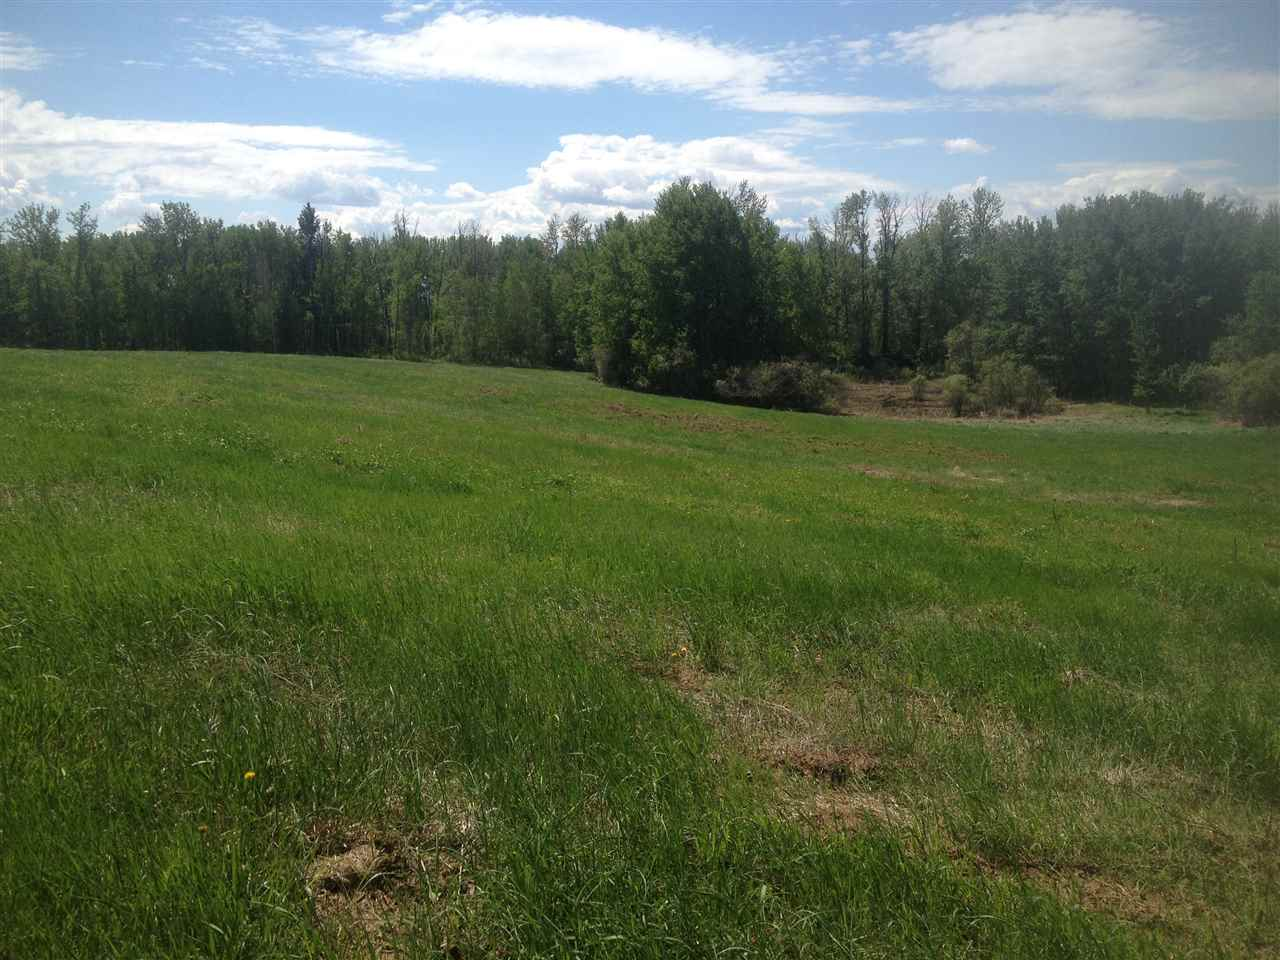 Photo 10: 52502 Range Road 22A: Rural Parkland County Rural Land/Vacant Lot for sale : MLS(r) # E4069524